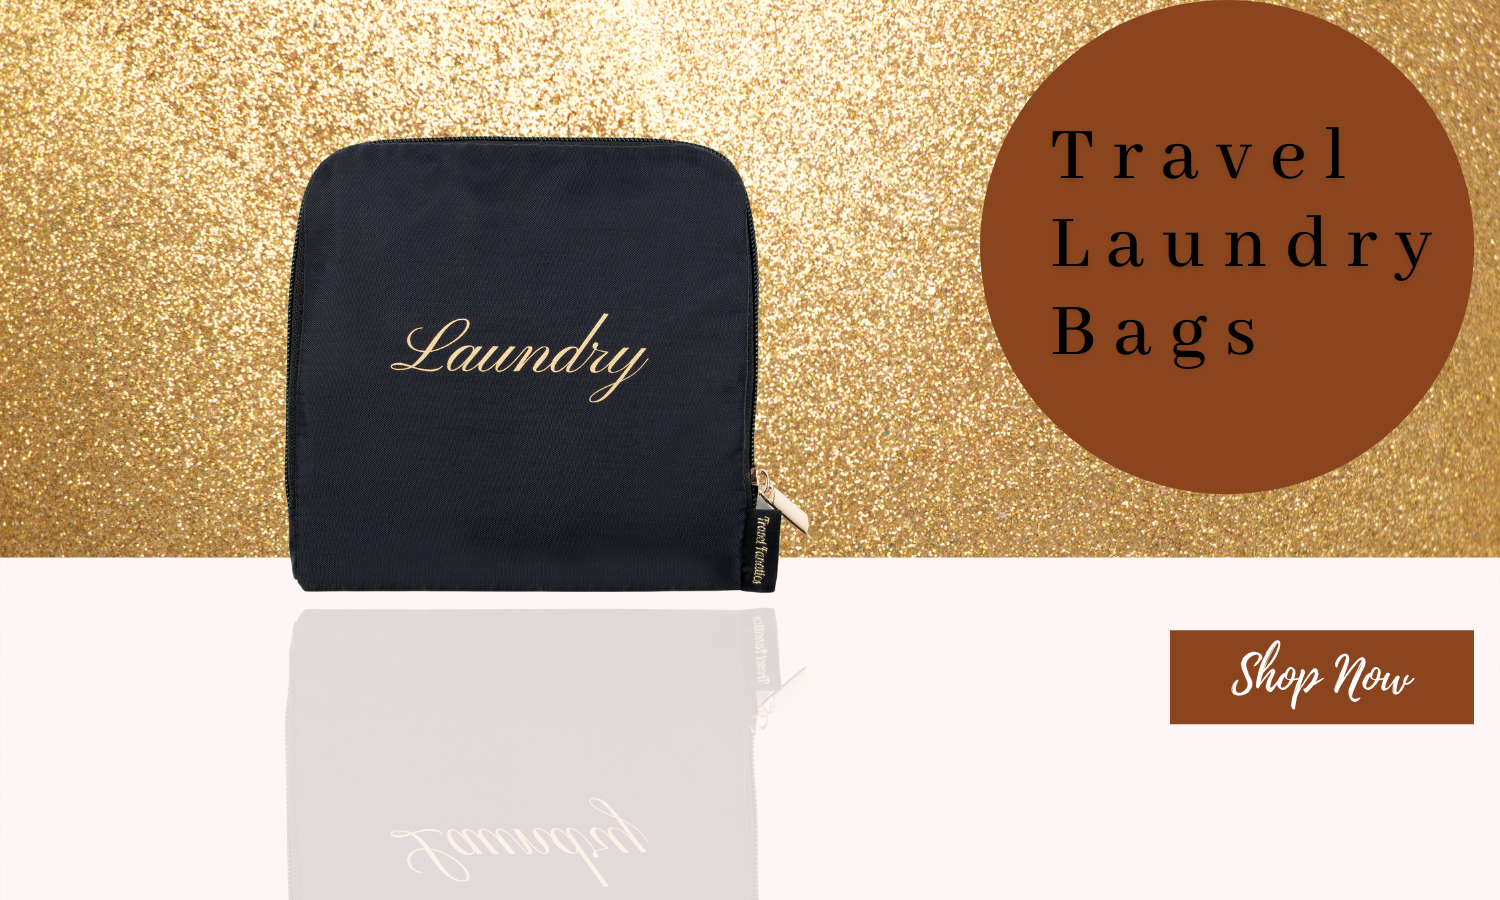 Travel Fanatics Travel Essentials Waterproof Travel Laundry Bag for Dirty Clothes Bag for Traveling with Zipper and Drawstring